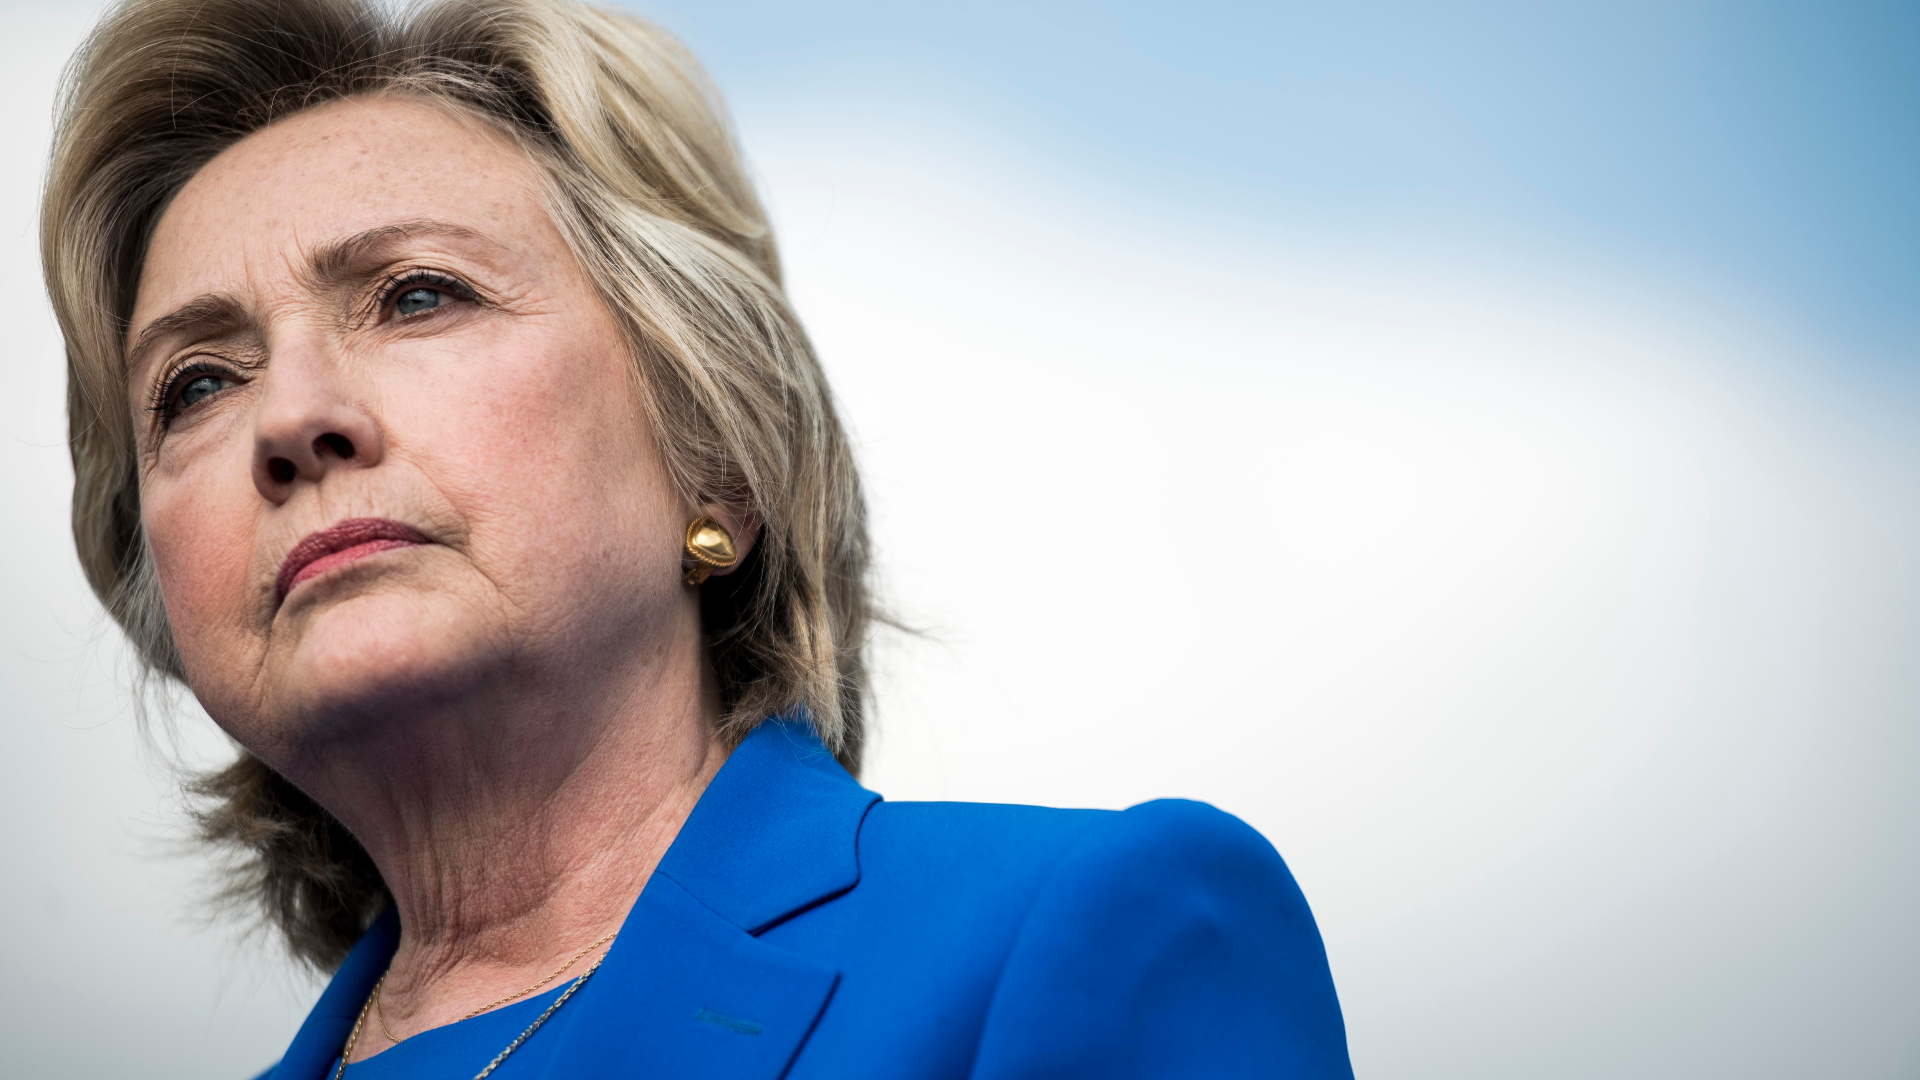 Clinton campaign, DNC paid for research that led to Russia dossier